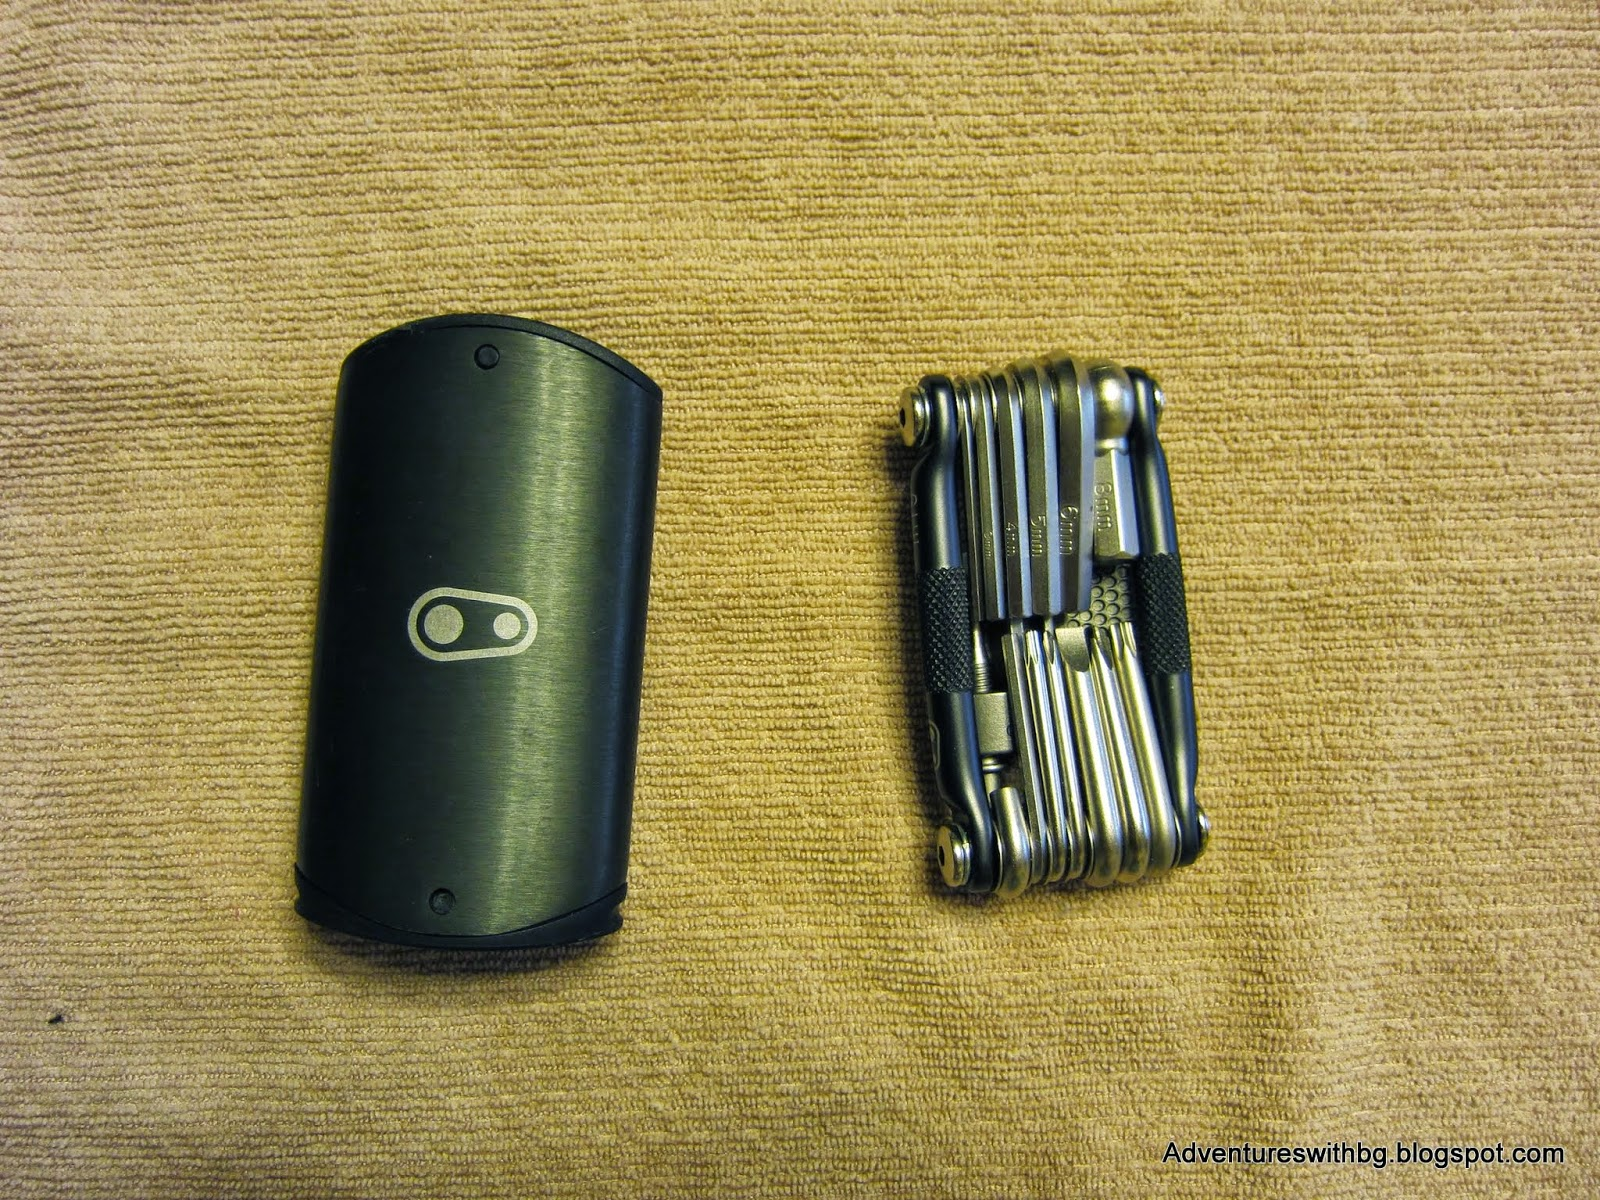 The M 19 Multi tool and the carrying flask